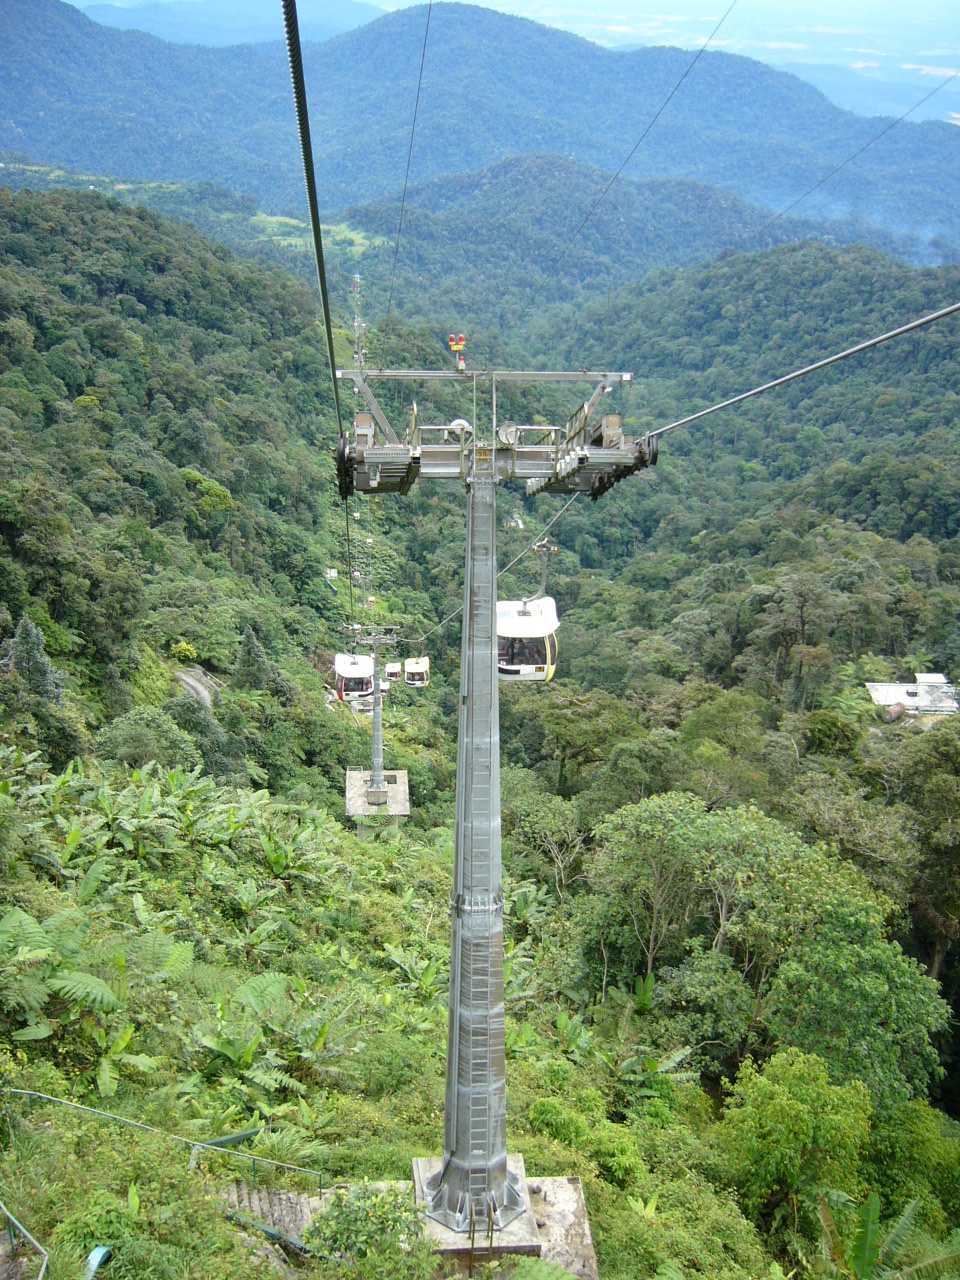 Genting Highlands Malaysia  City new picture : Genting Highlands Malaysia Wikipedia File Genting Highland Malaysia